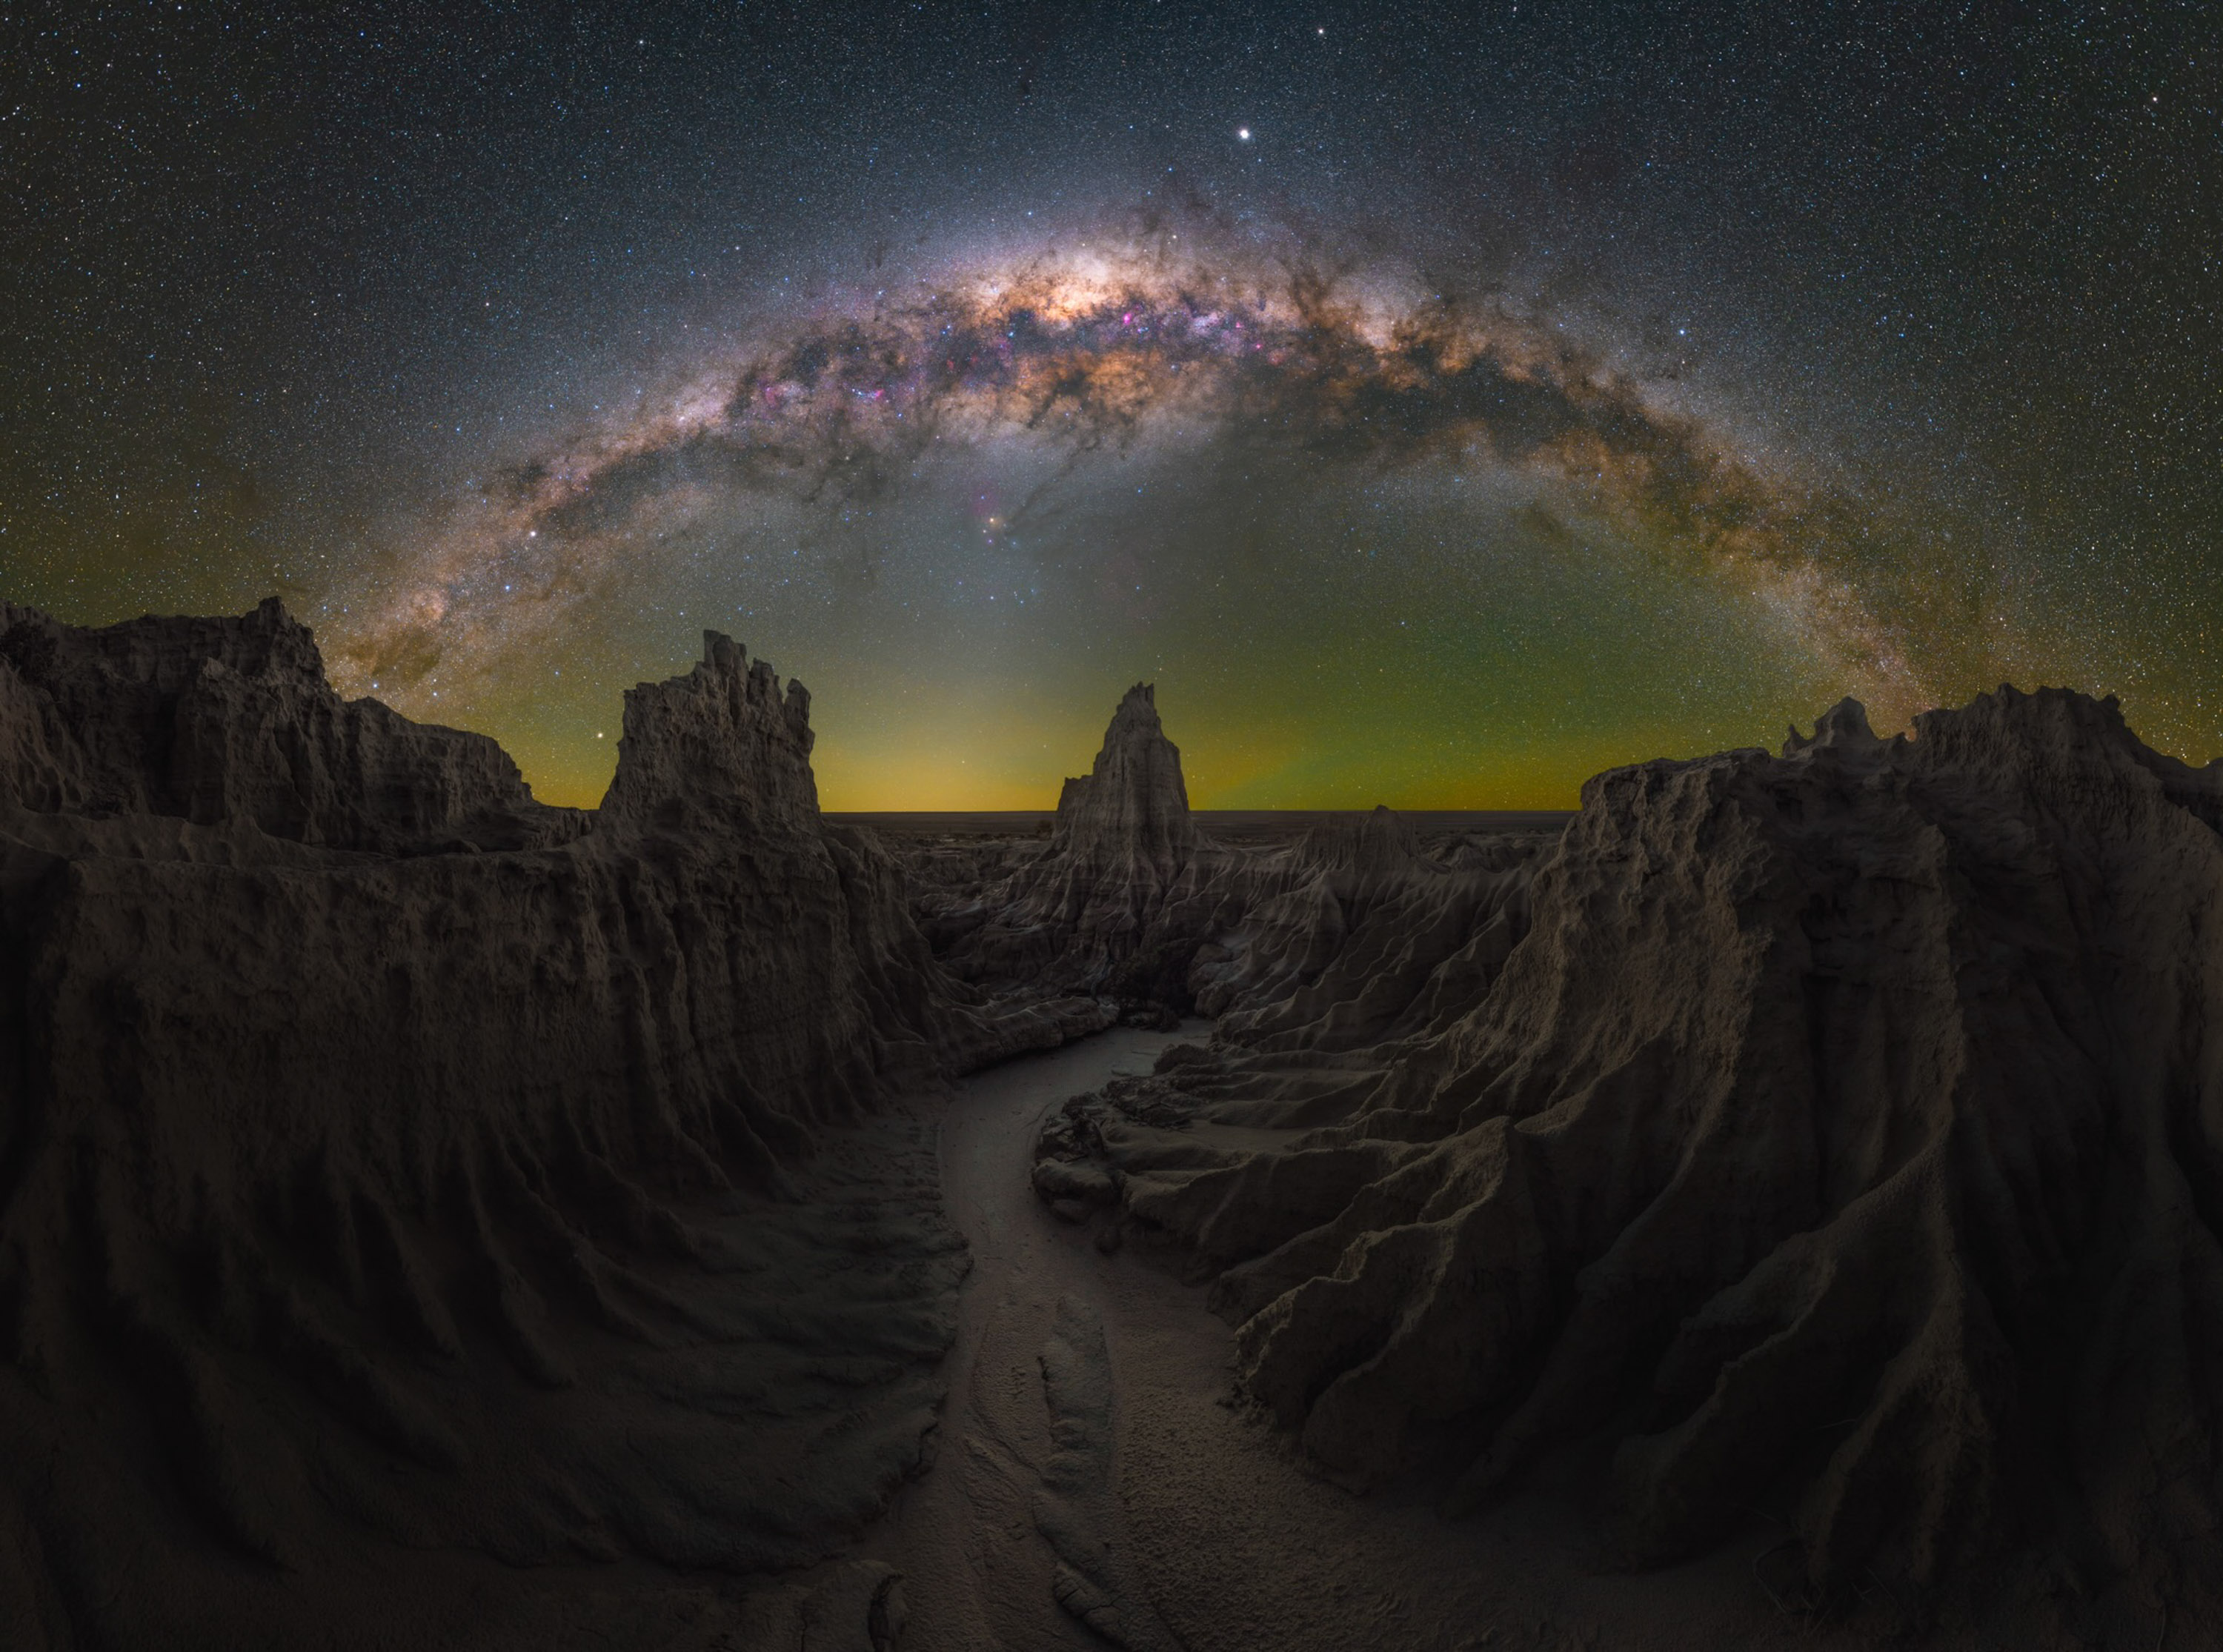 Dragon's Lair, shot in Mungo, New South Wales, Australia. The Milky way arcs over a canyon where jagged cliffs frame a winding path, leading to a central spire. A faint golden glow emanates from the horizon.